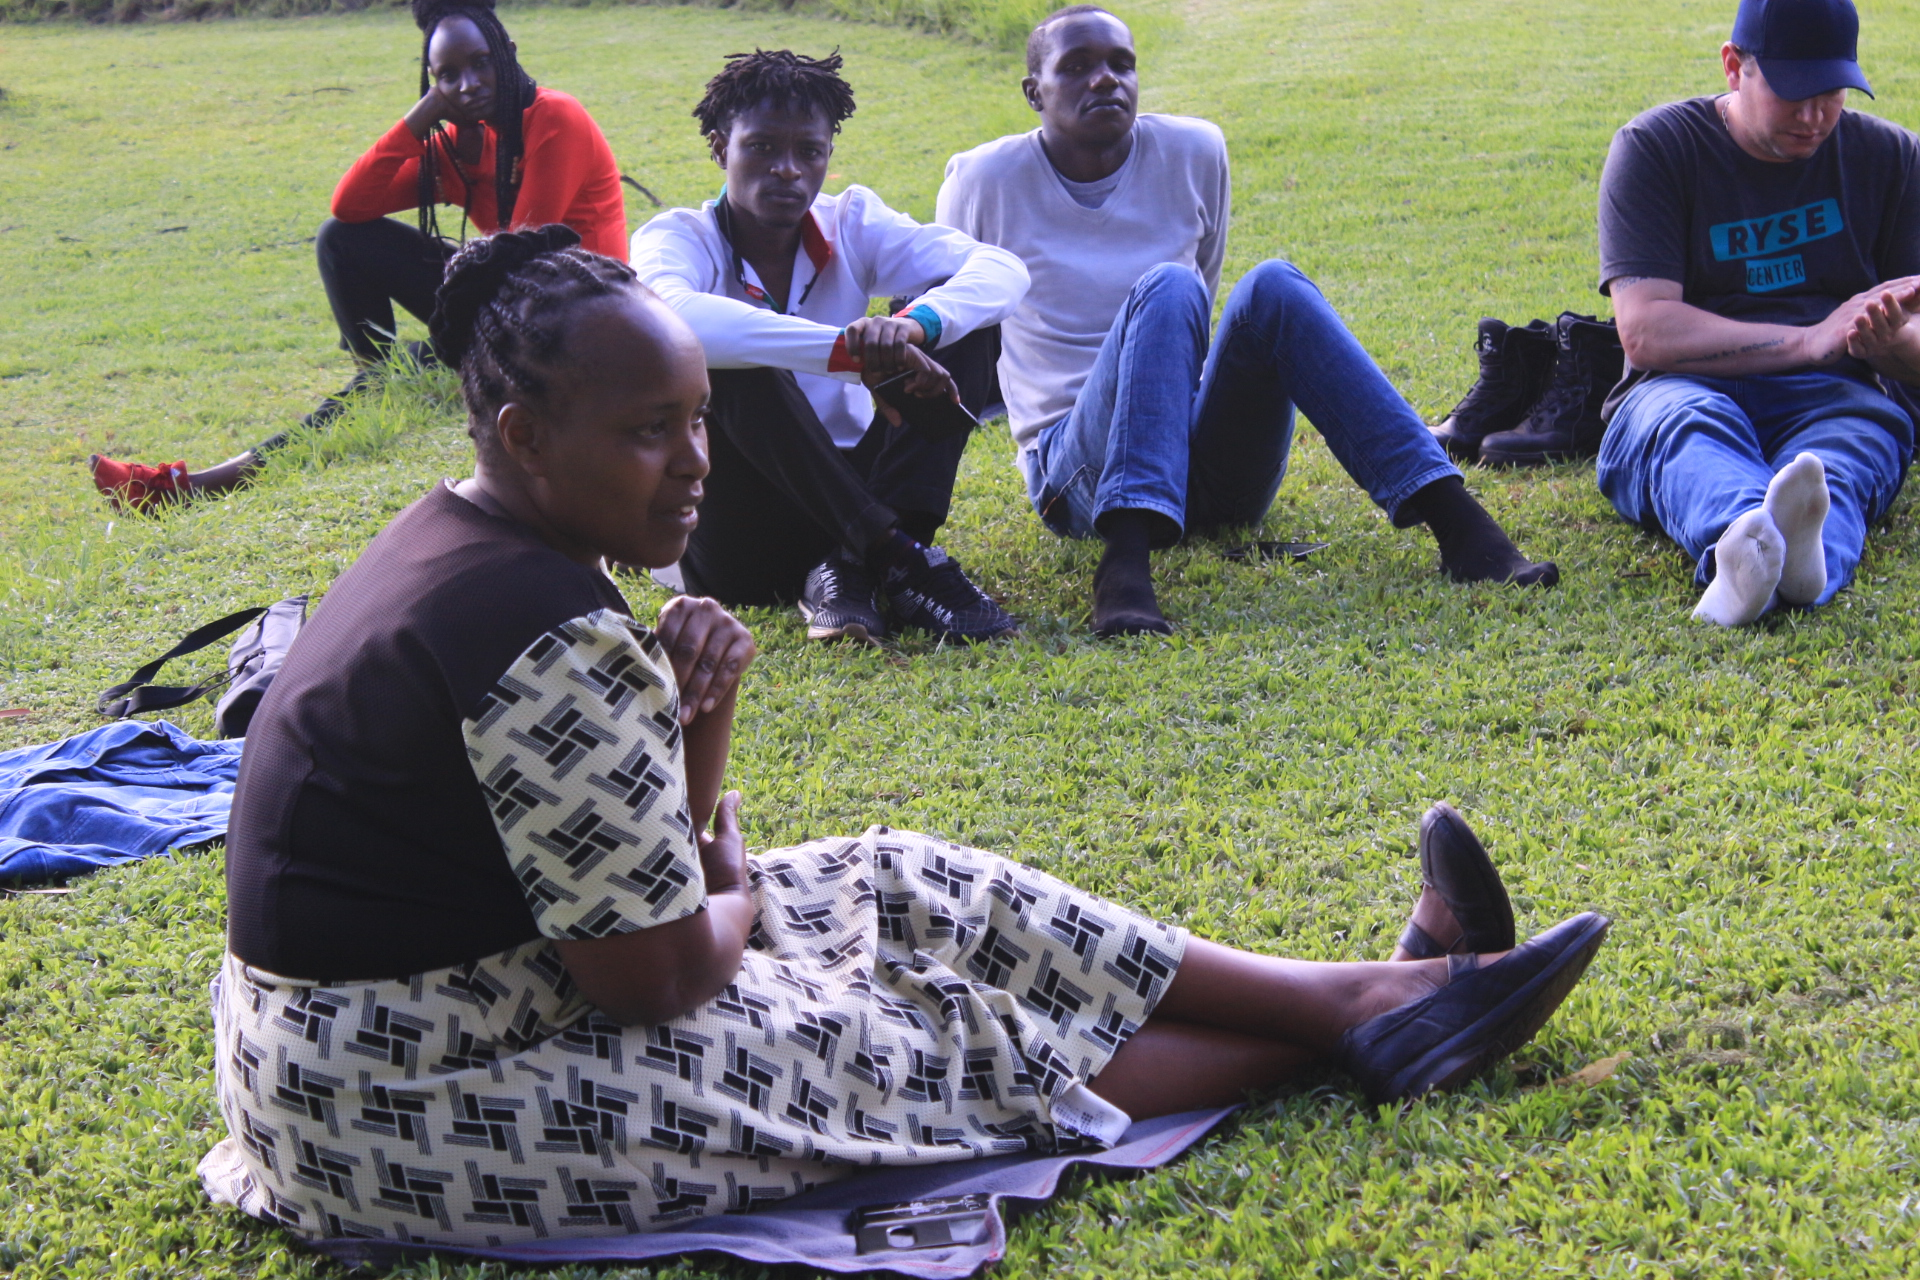 Nancy Njoki, Muungano leader from Mathare, shares her experience with savings systems. Picture taken at Karura Forest, Nairobi.